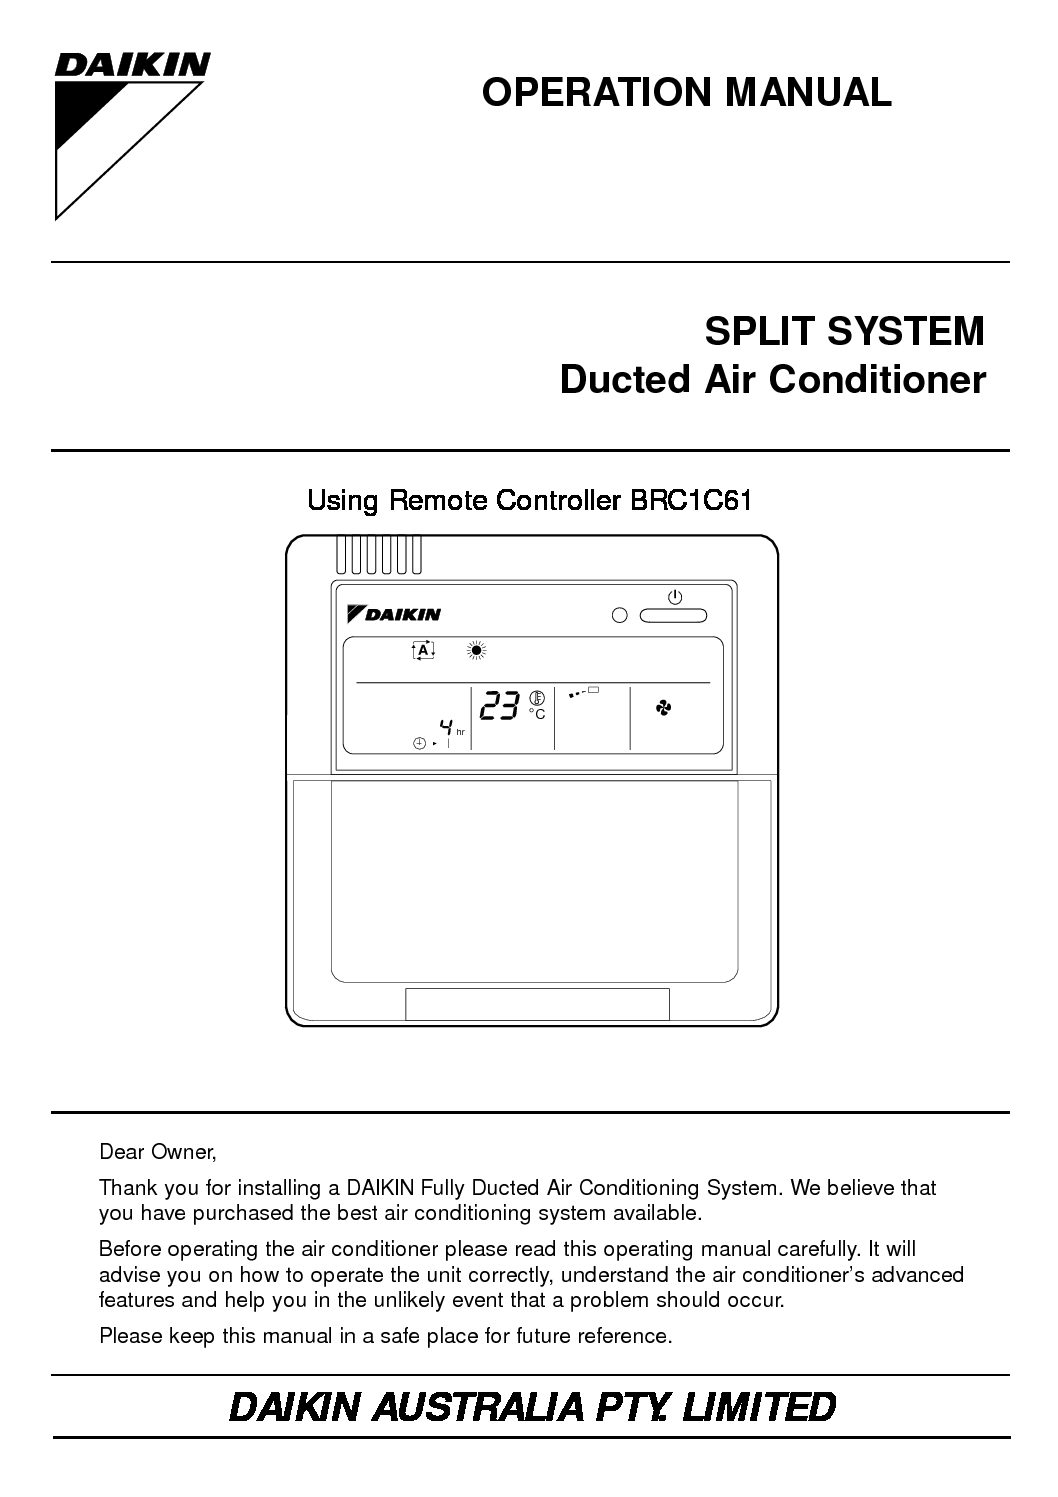 fujitsu ducted air conditioner instruction manual